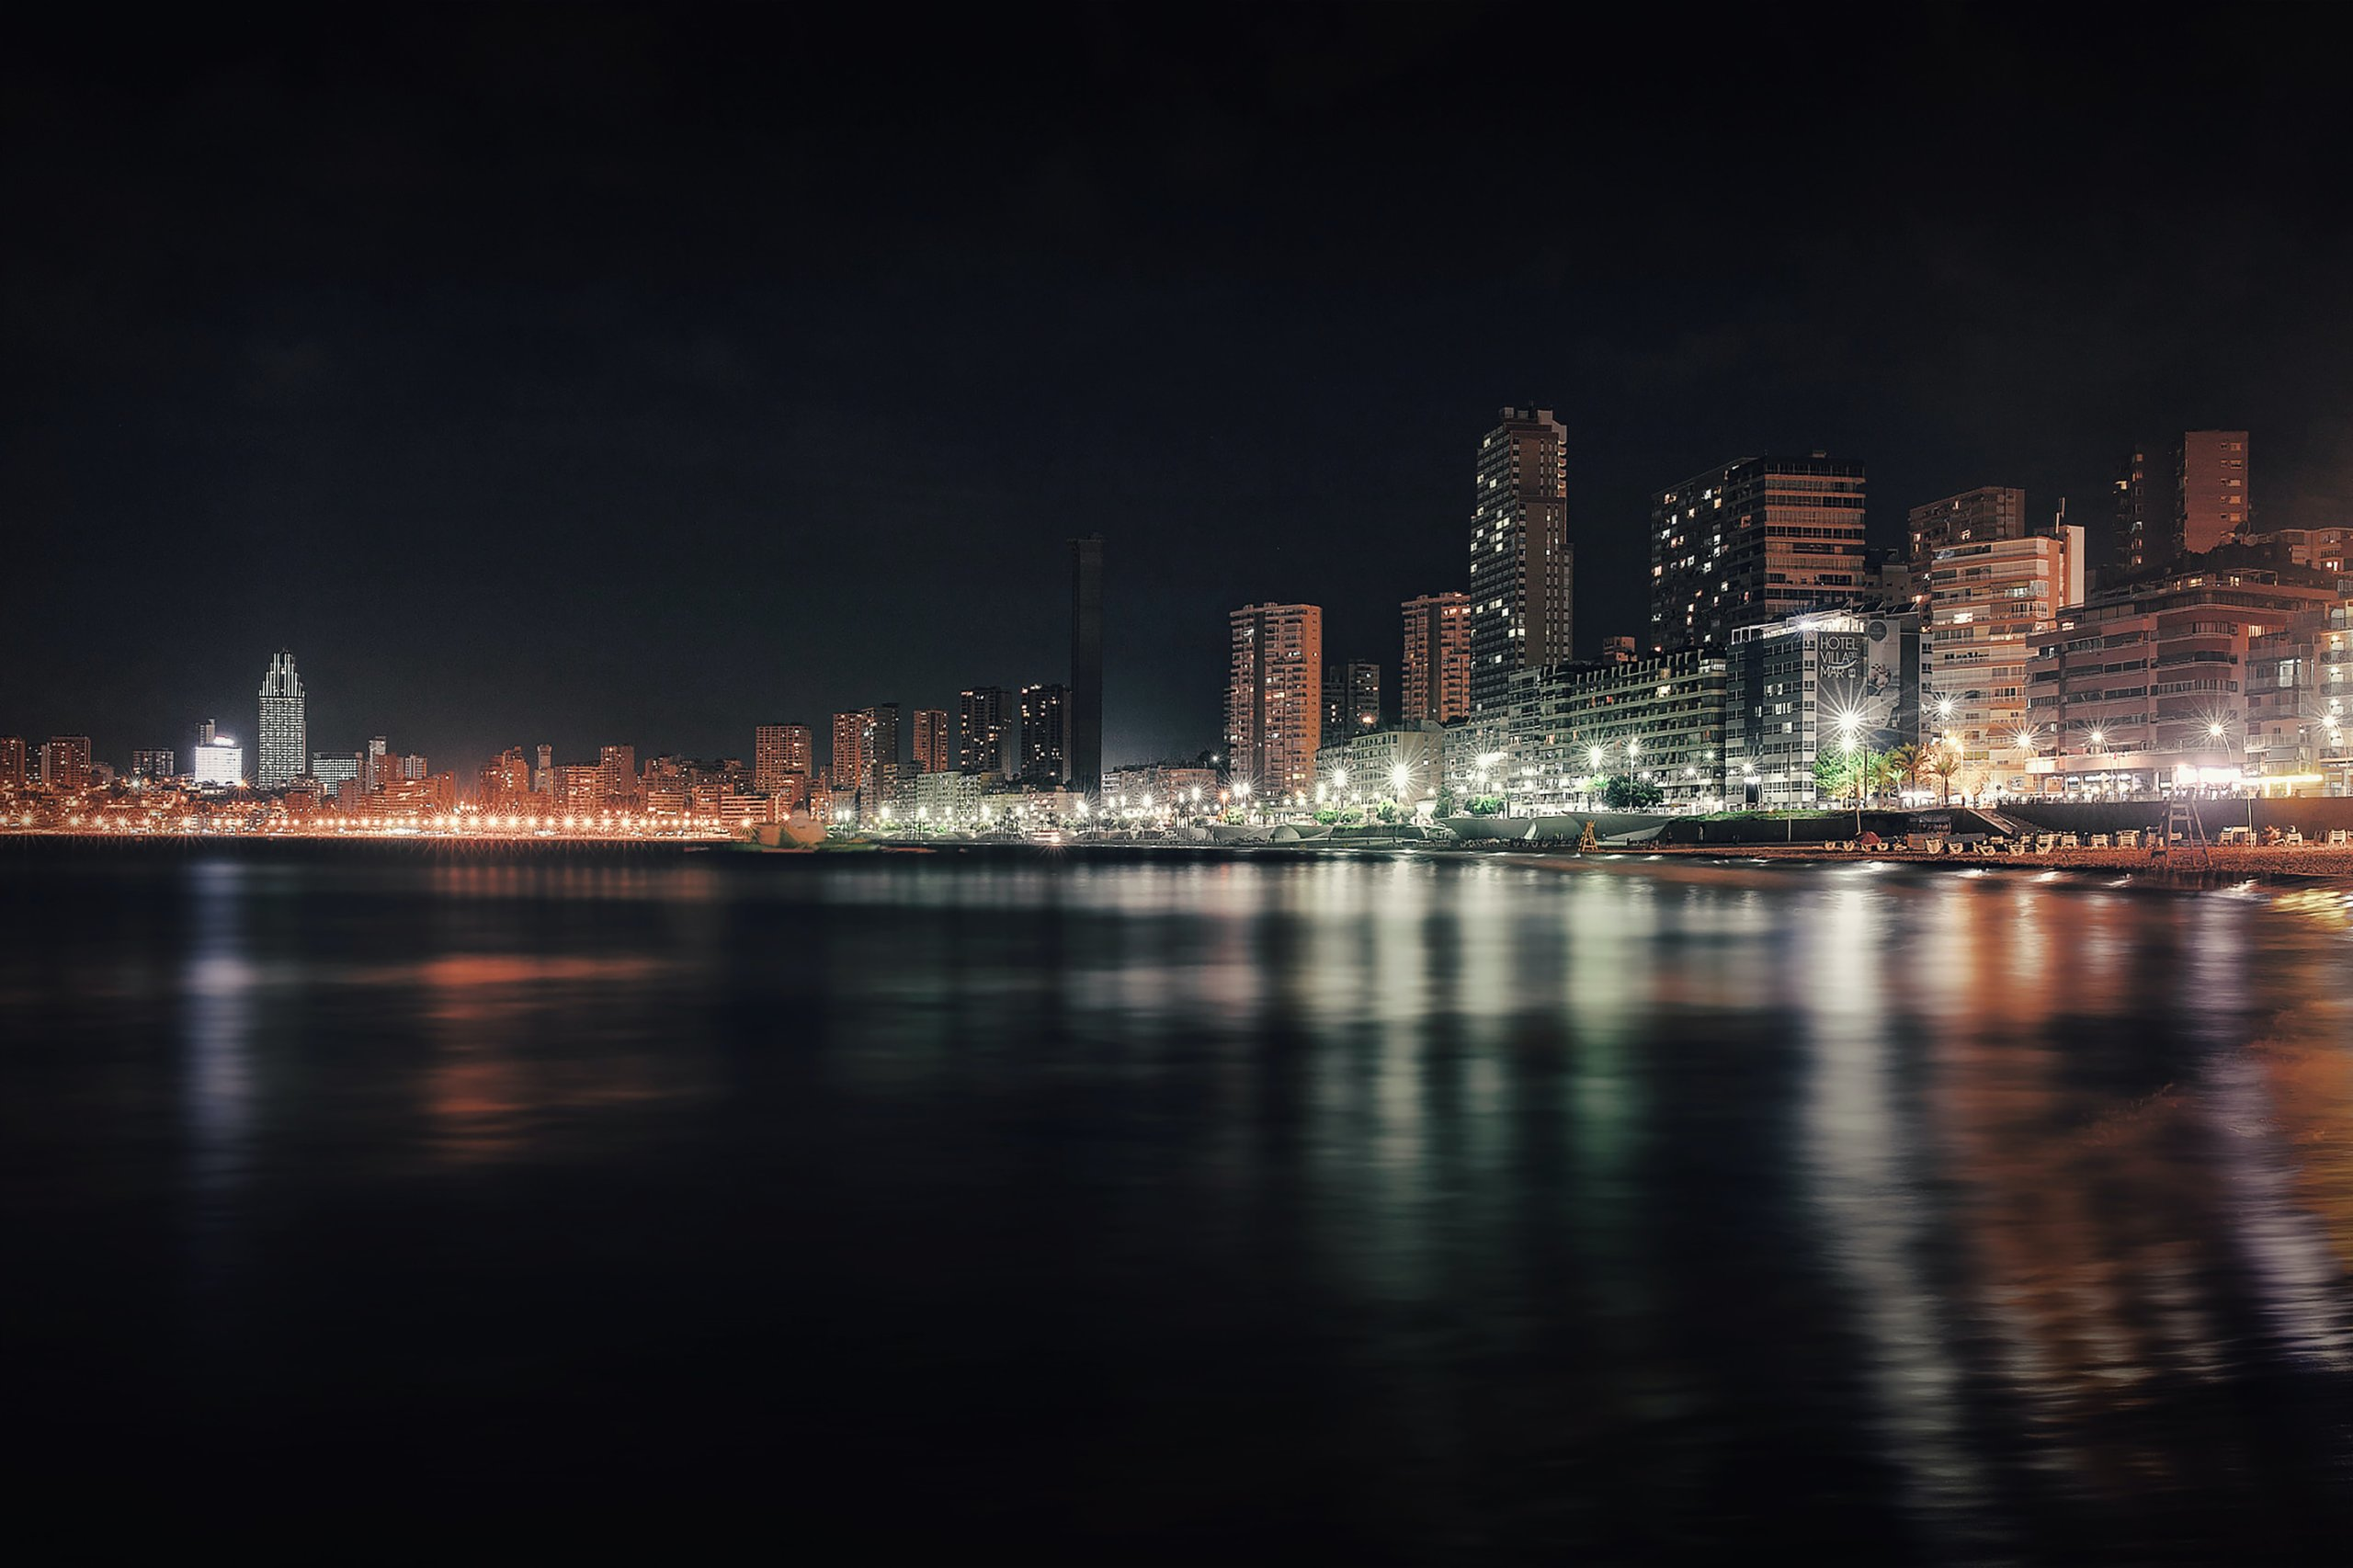 Benidorm coastline at night